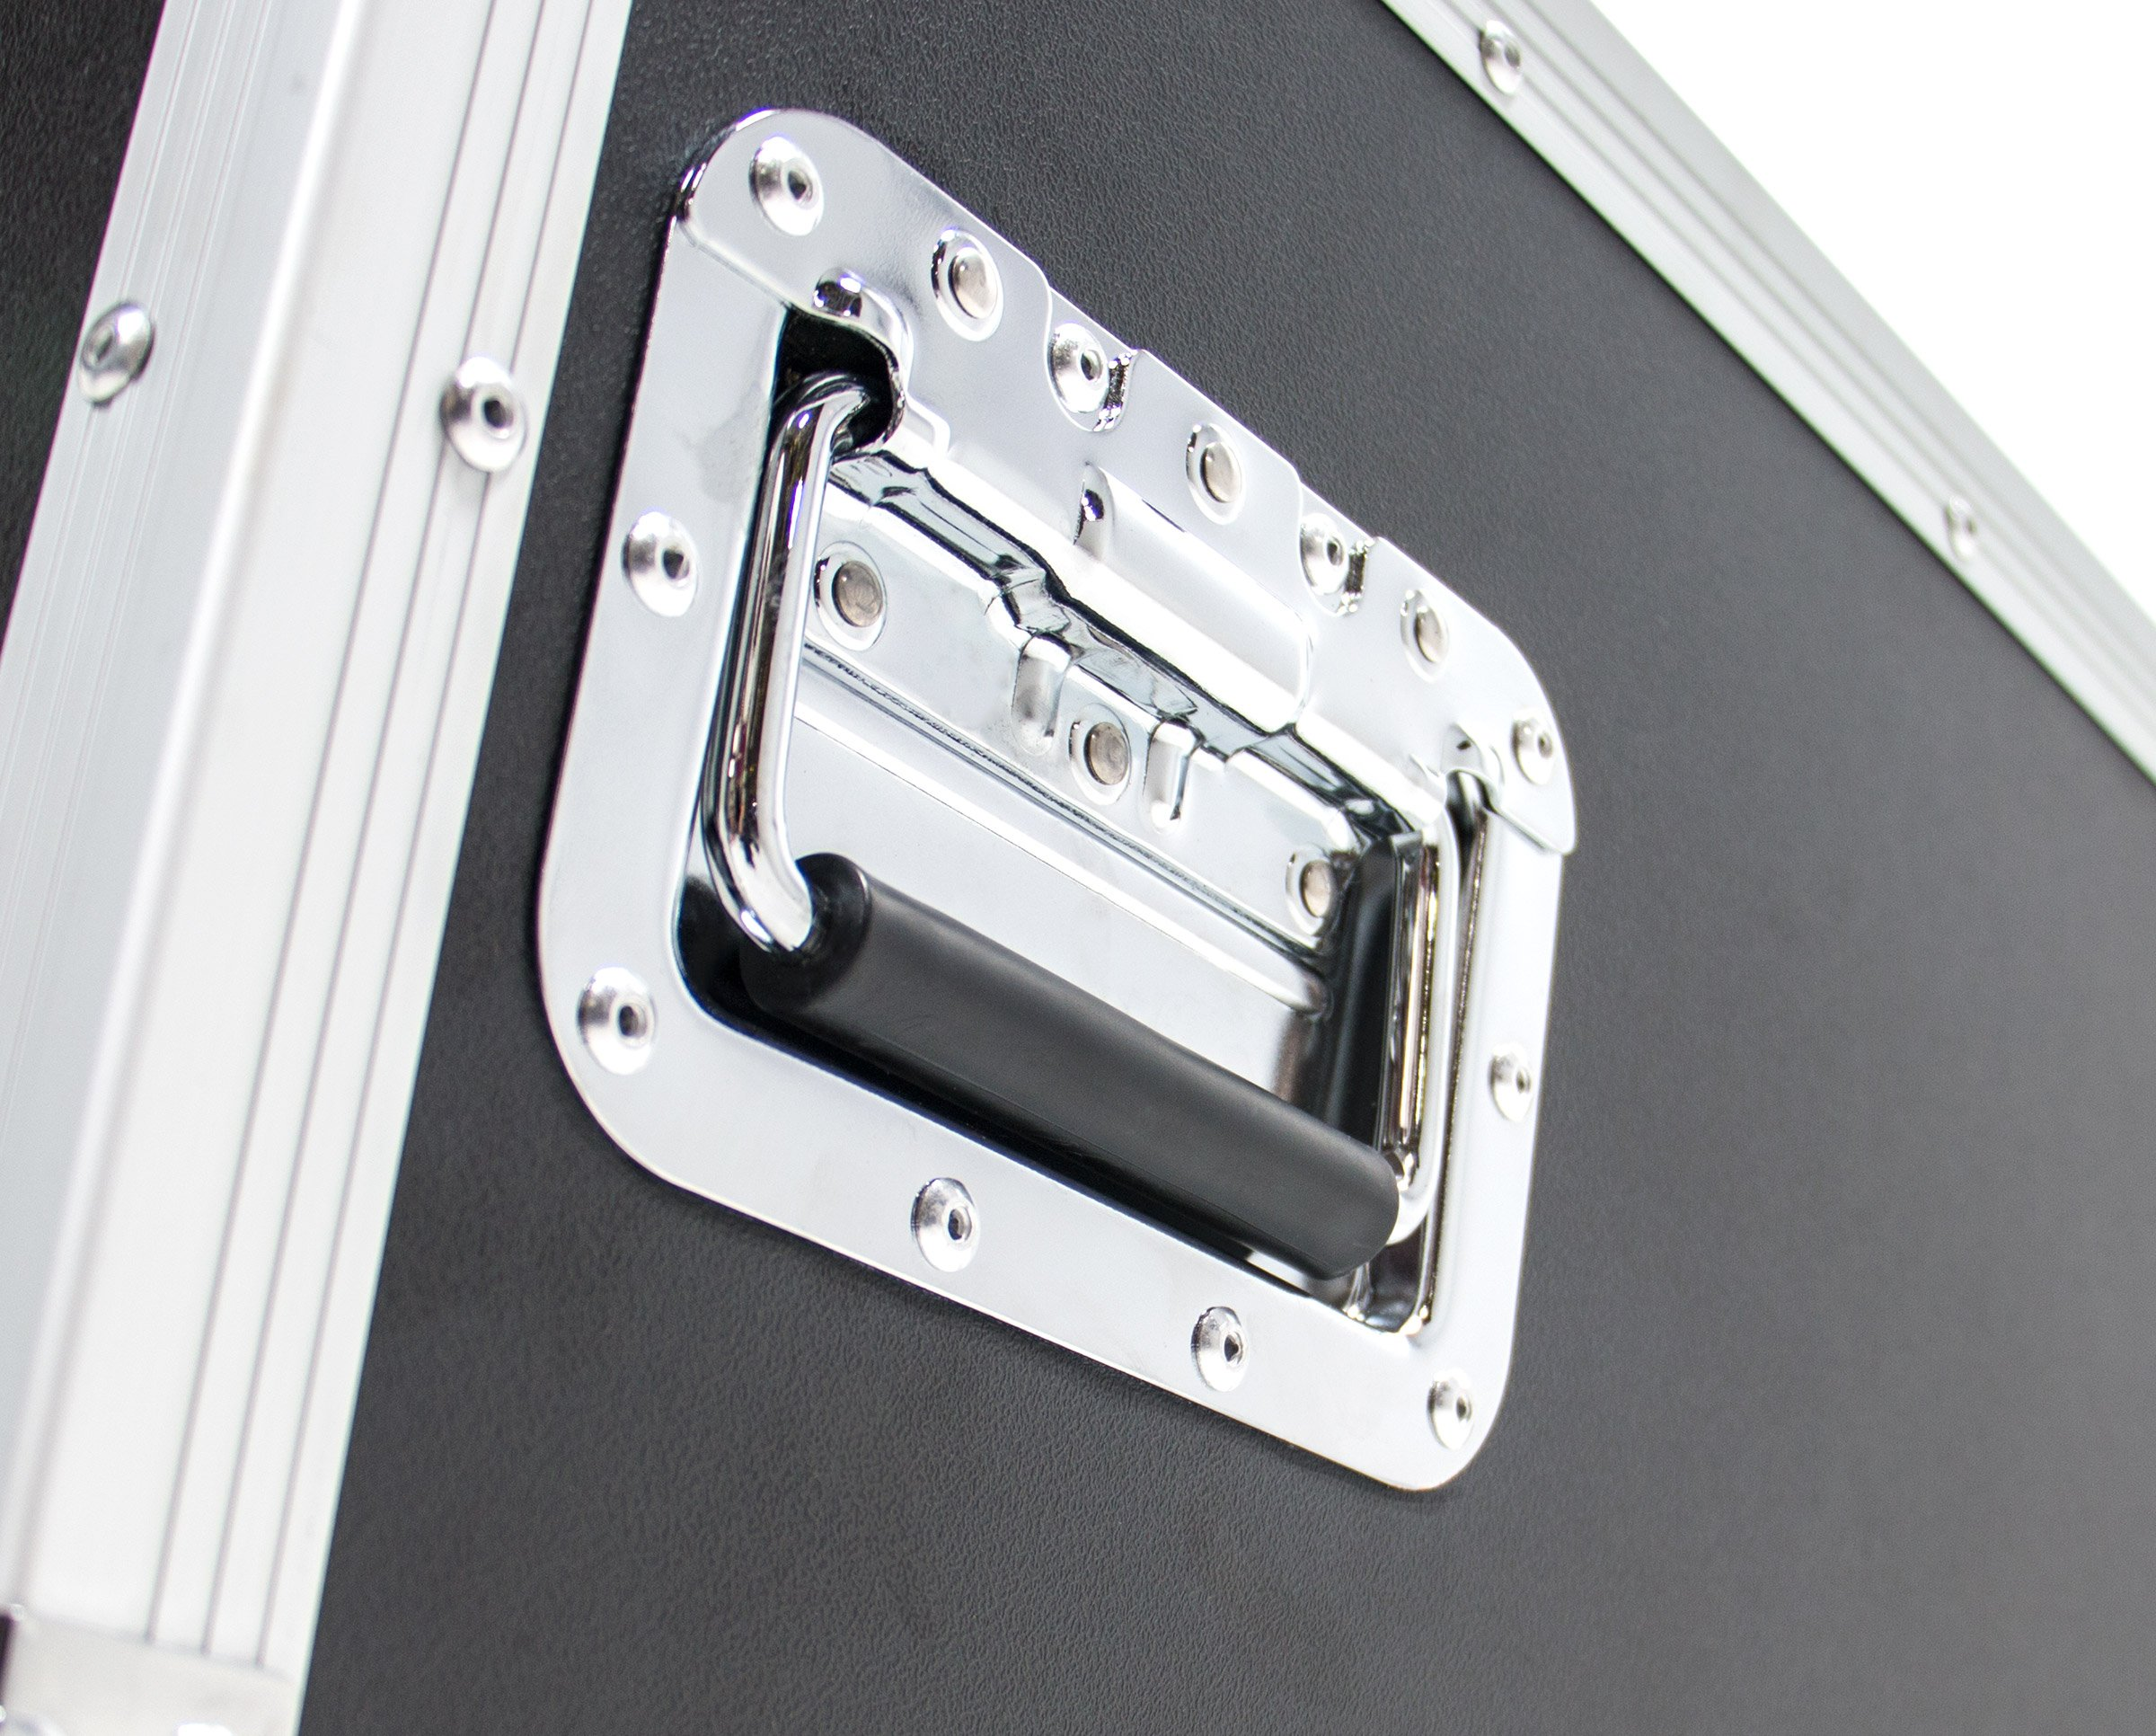 10 Space (10U) ATA Rack Effects Road Shock Mount Case (12'' Deep) by OSP (Image #5)